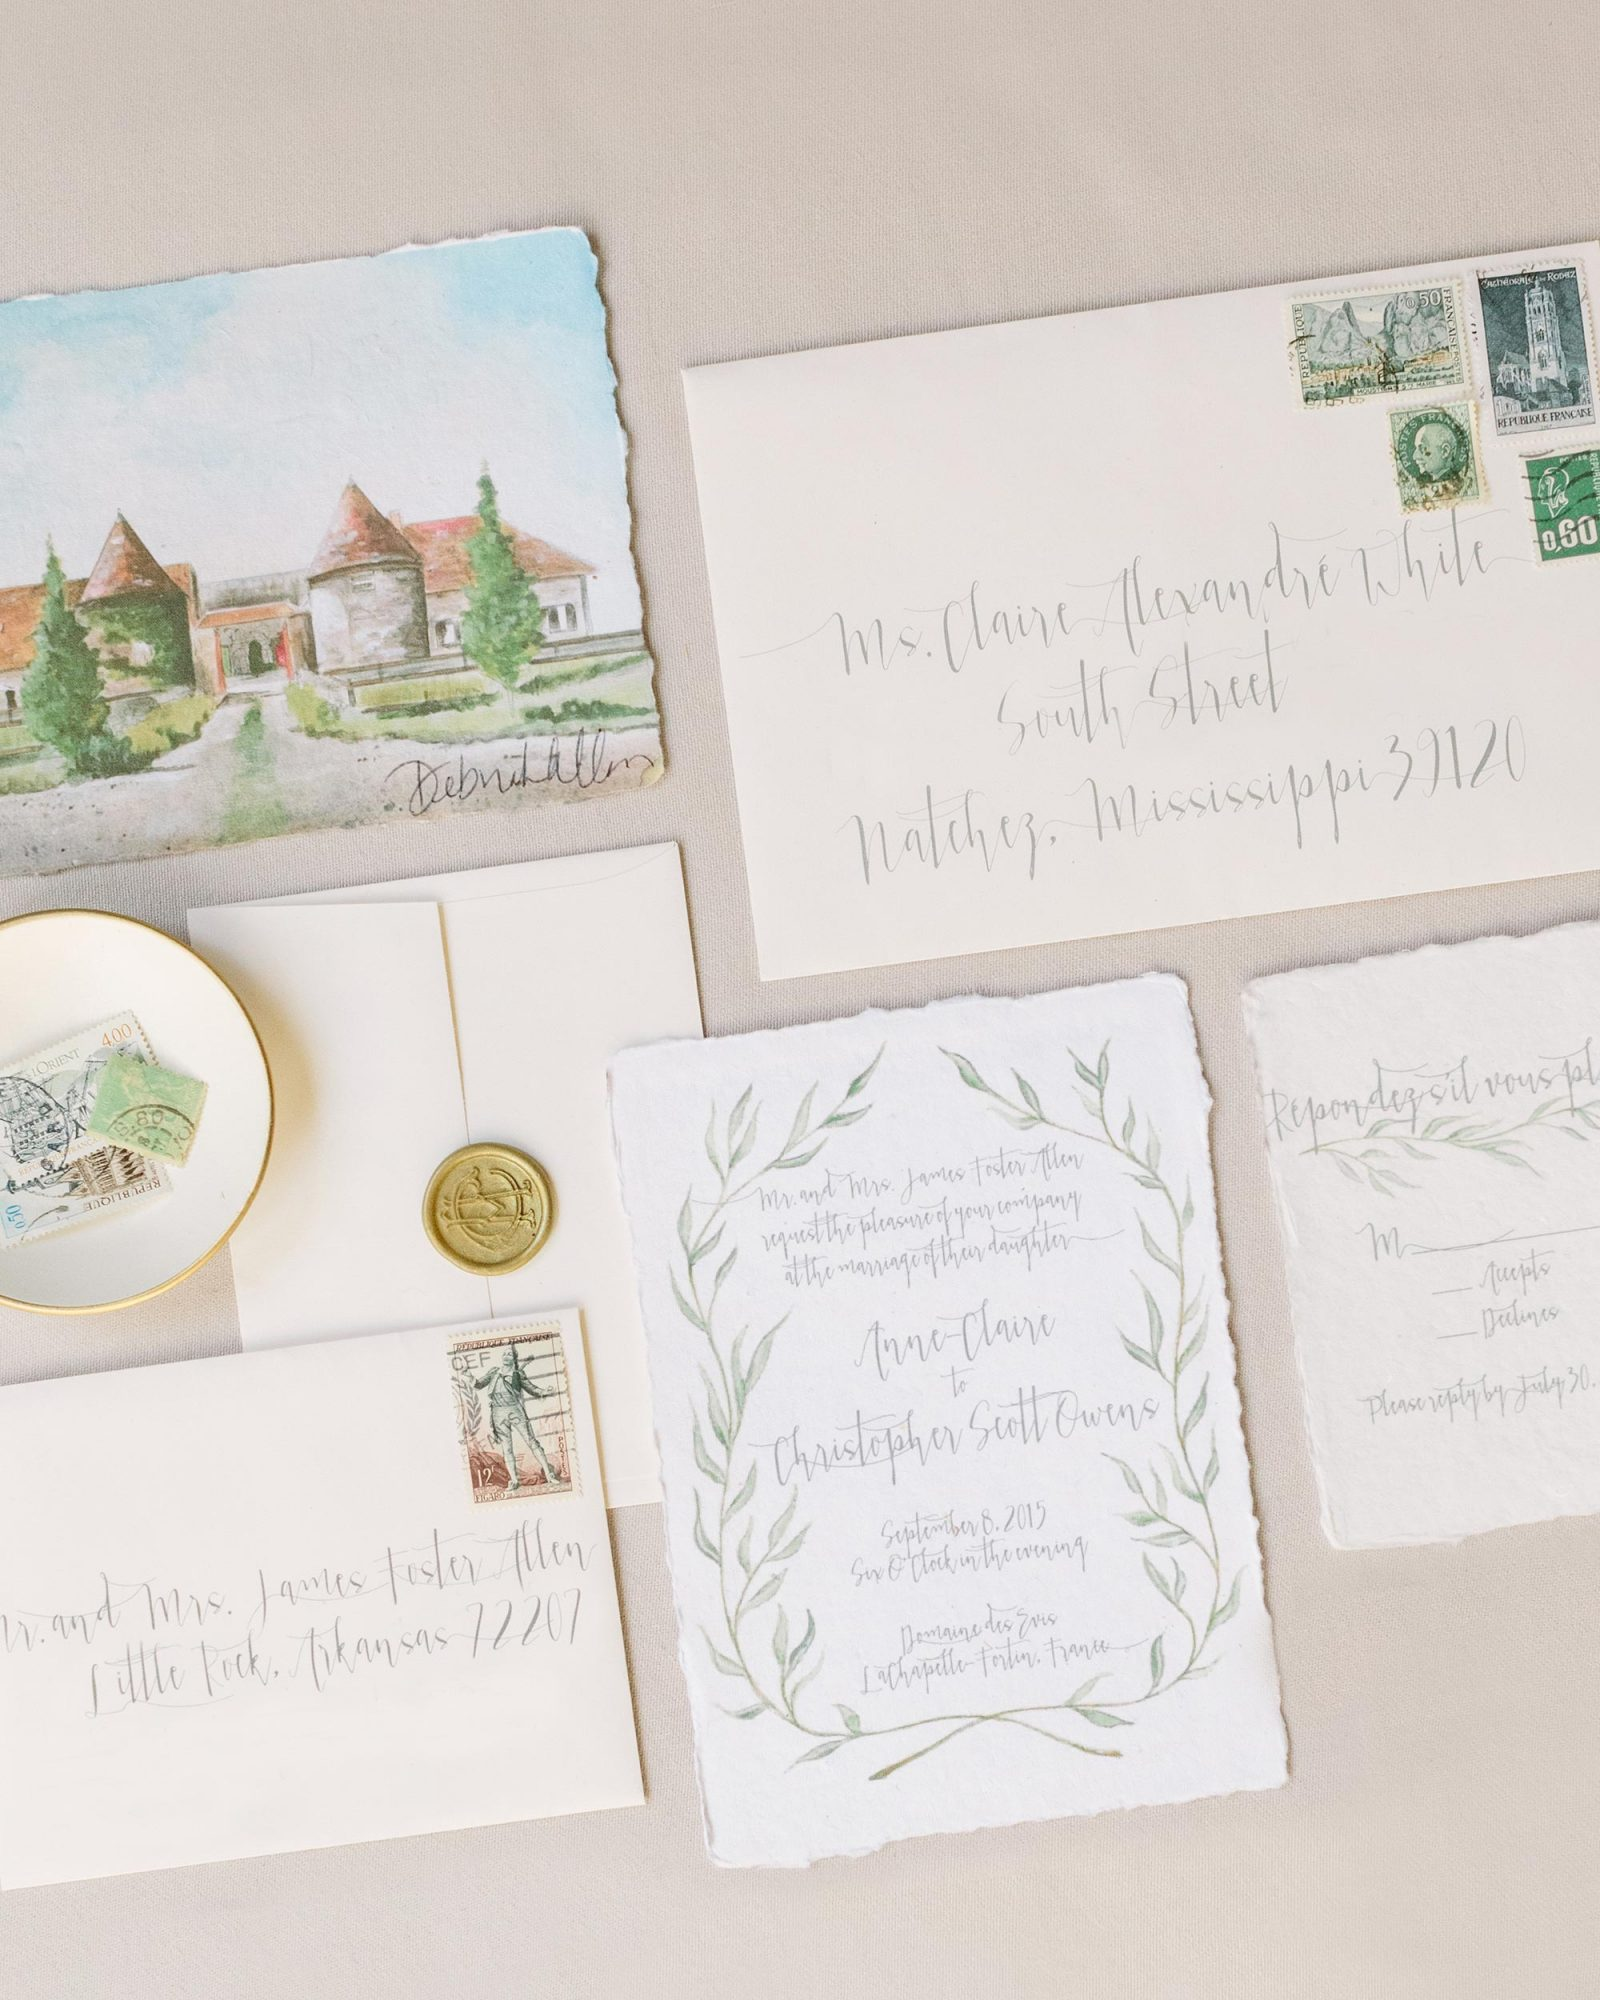 anneclaire-chris-wedding-france-stationery-1-s113034-00716.jpg